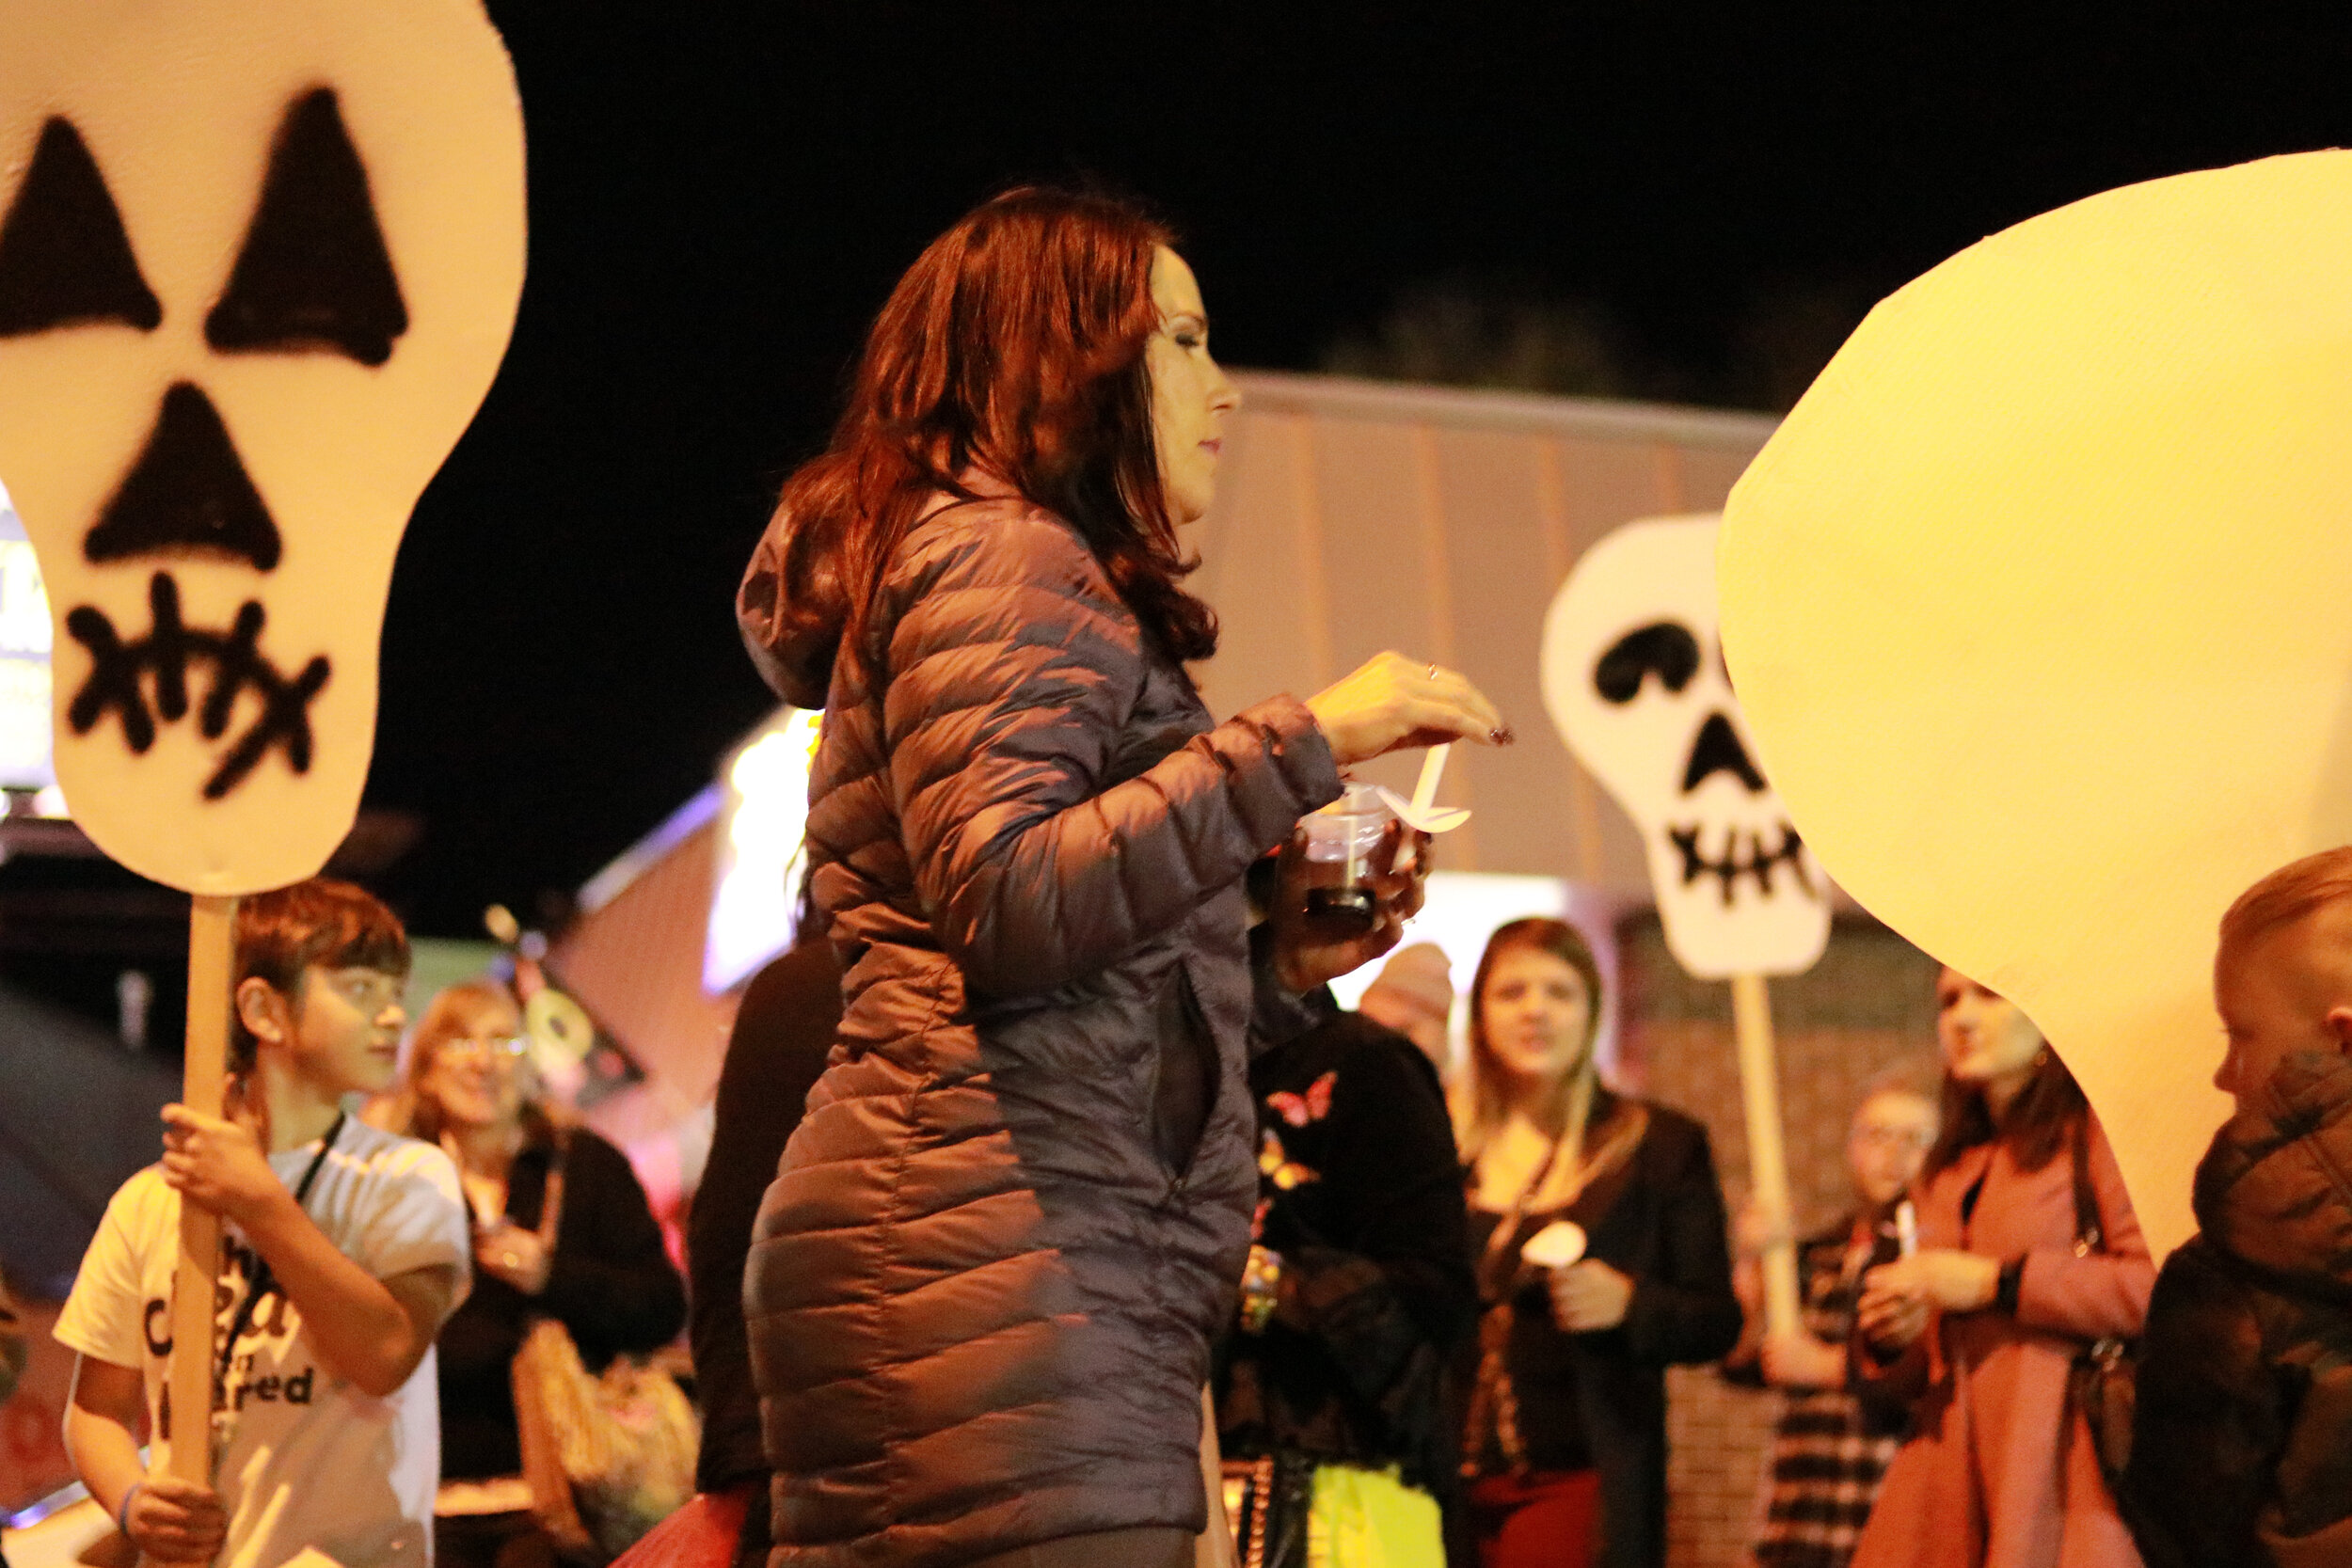 A candle light procession starting from Pirate: Contemporary Arts. | Photo by 40 West Arts